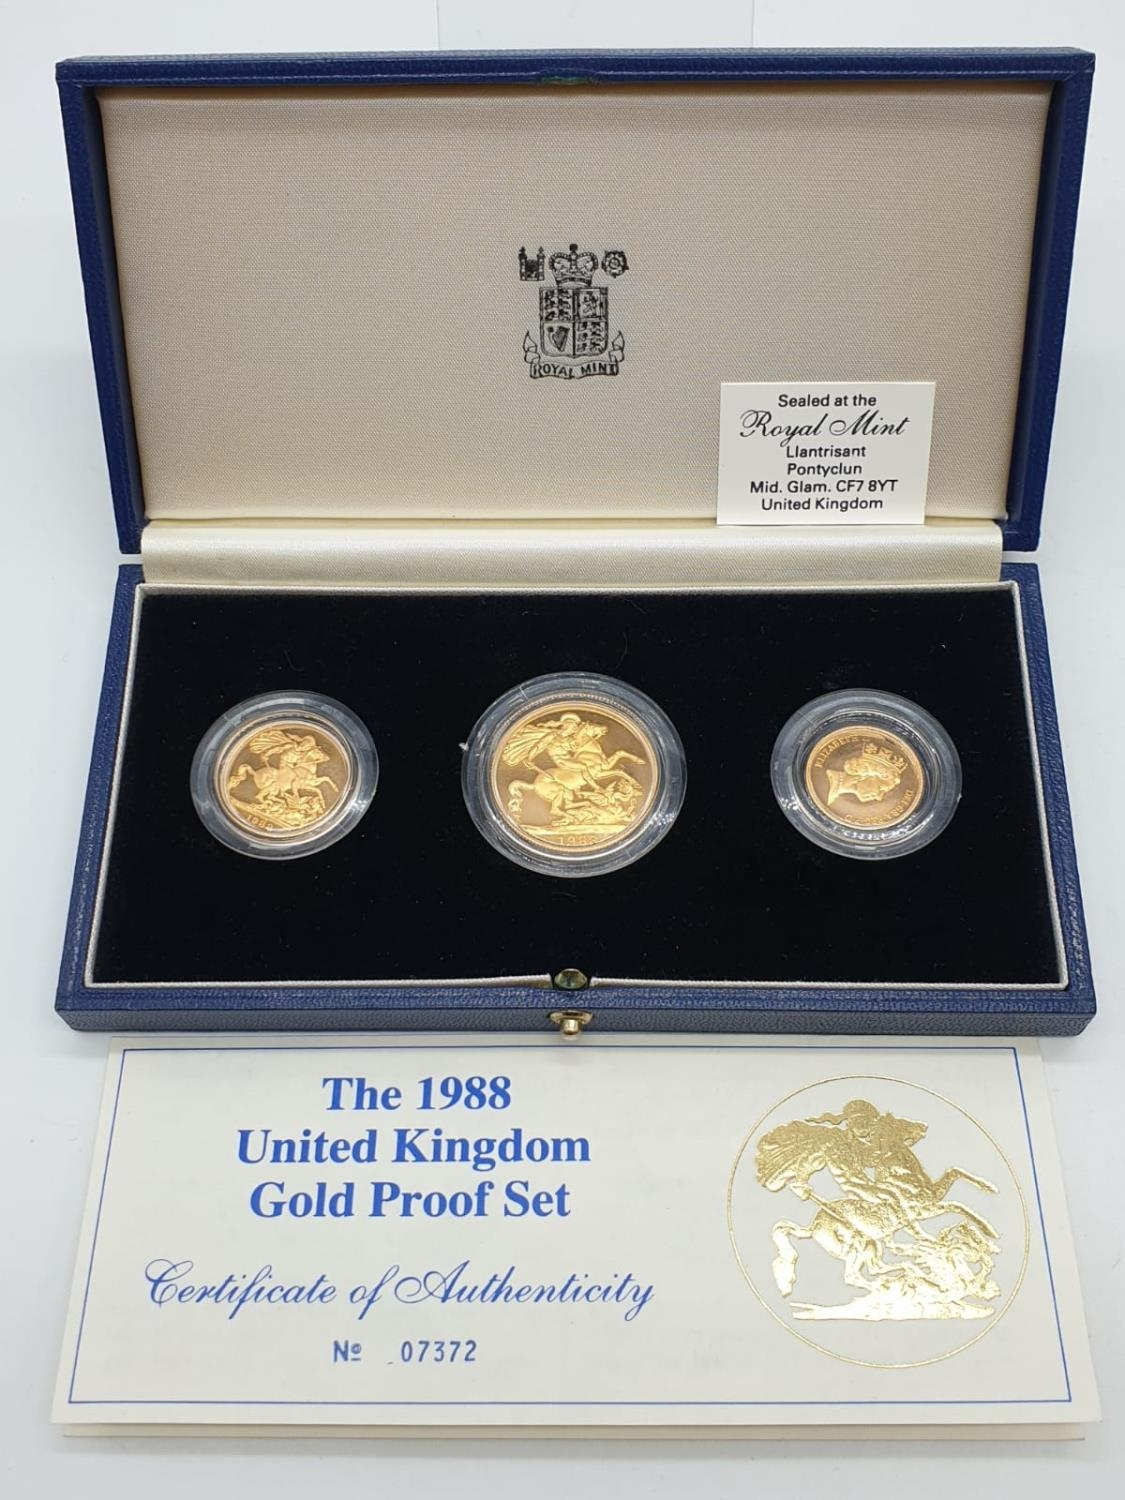 1988 UK GOLD PROOF 3 COIN COLLECTION TO INCLUDE A DOUBLE SOVEREIGN, A SOVEREIGN AND A HALF